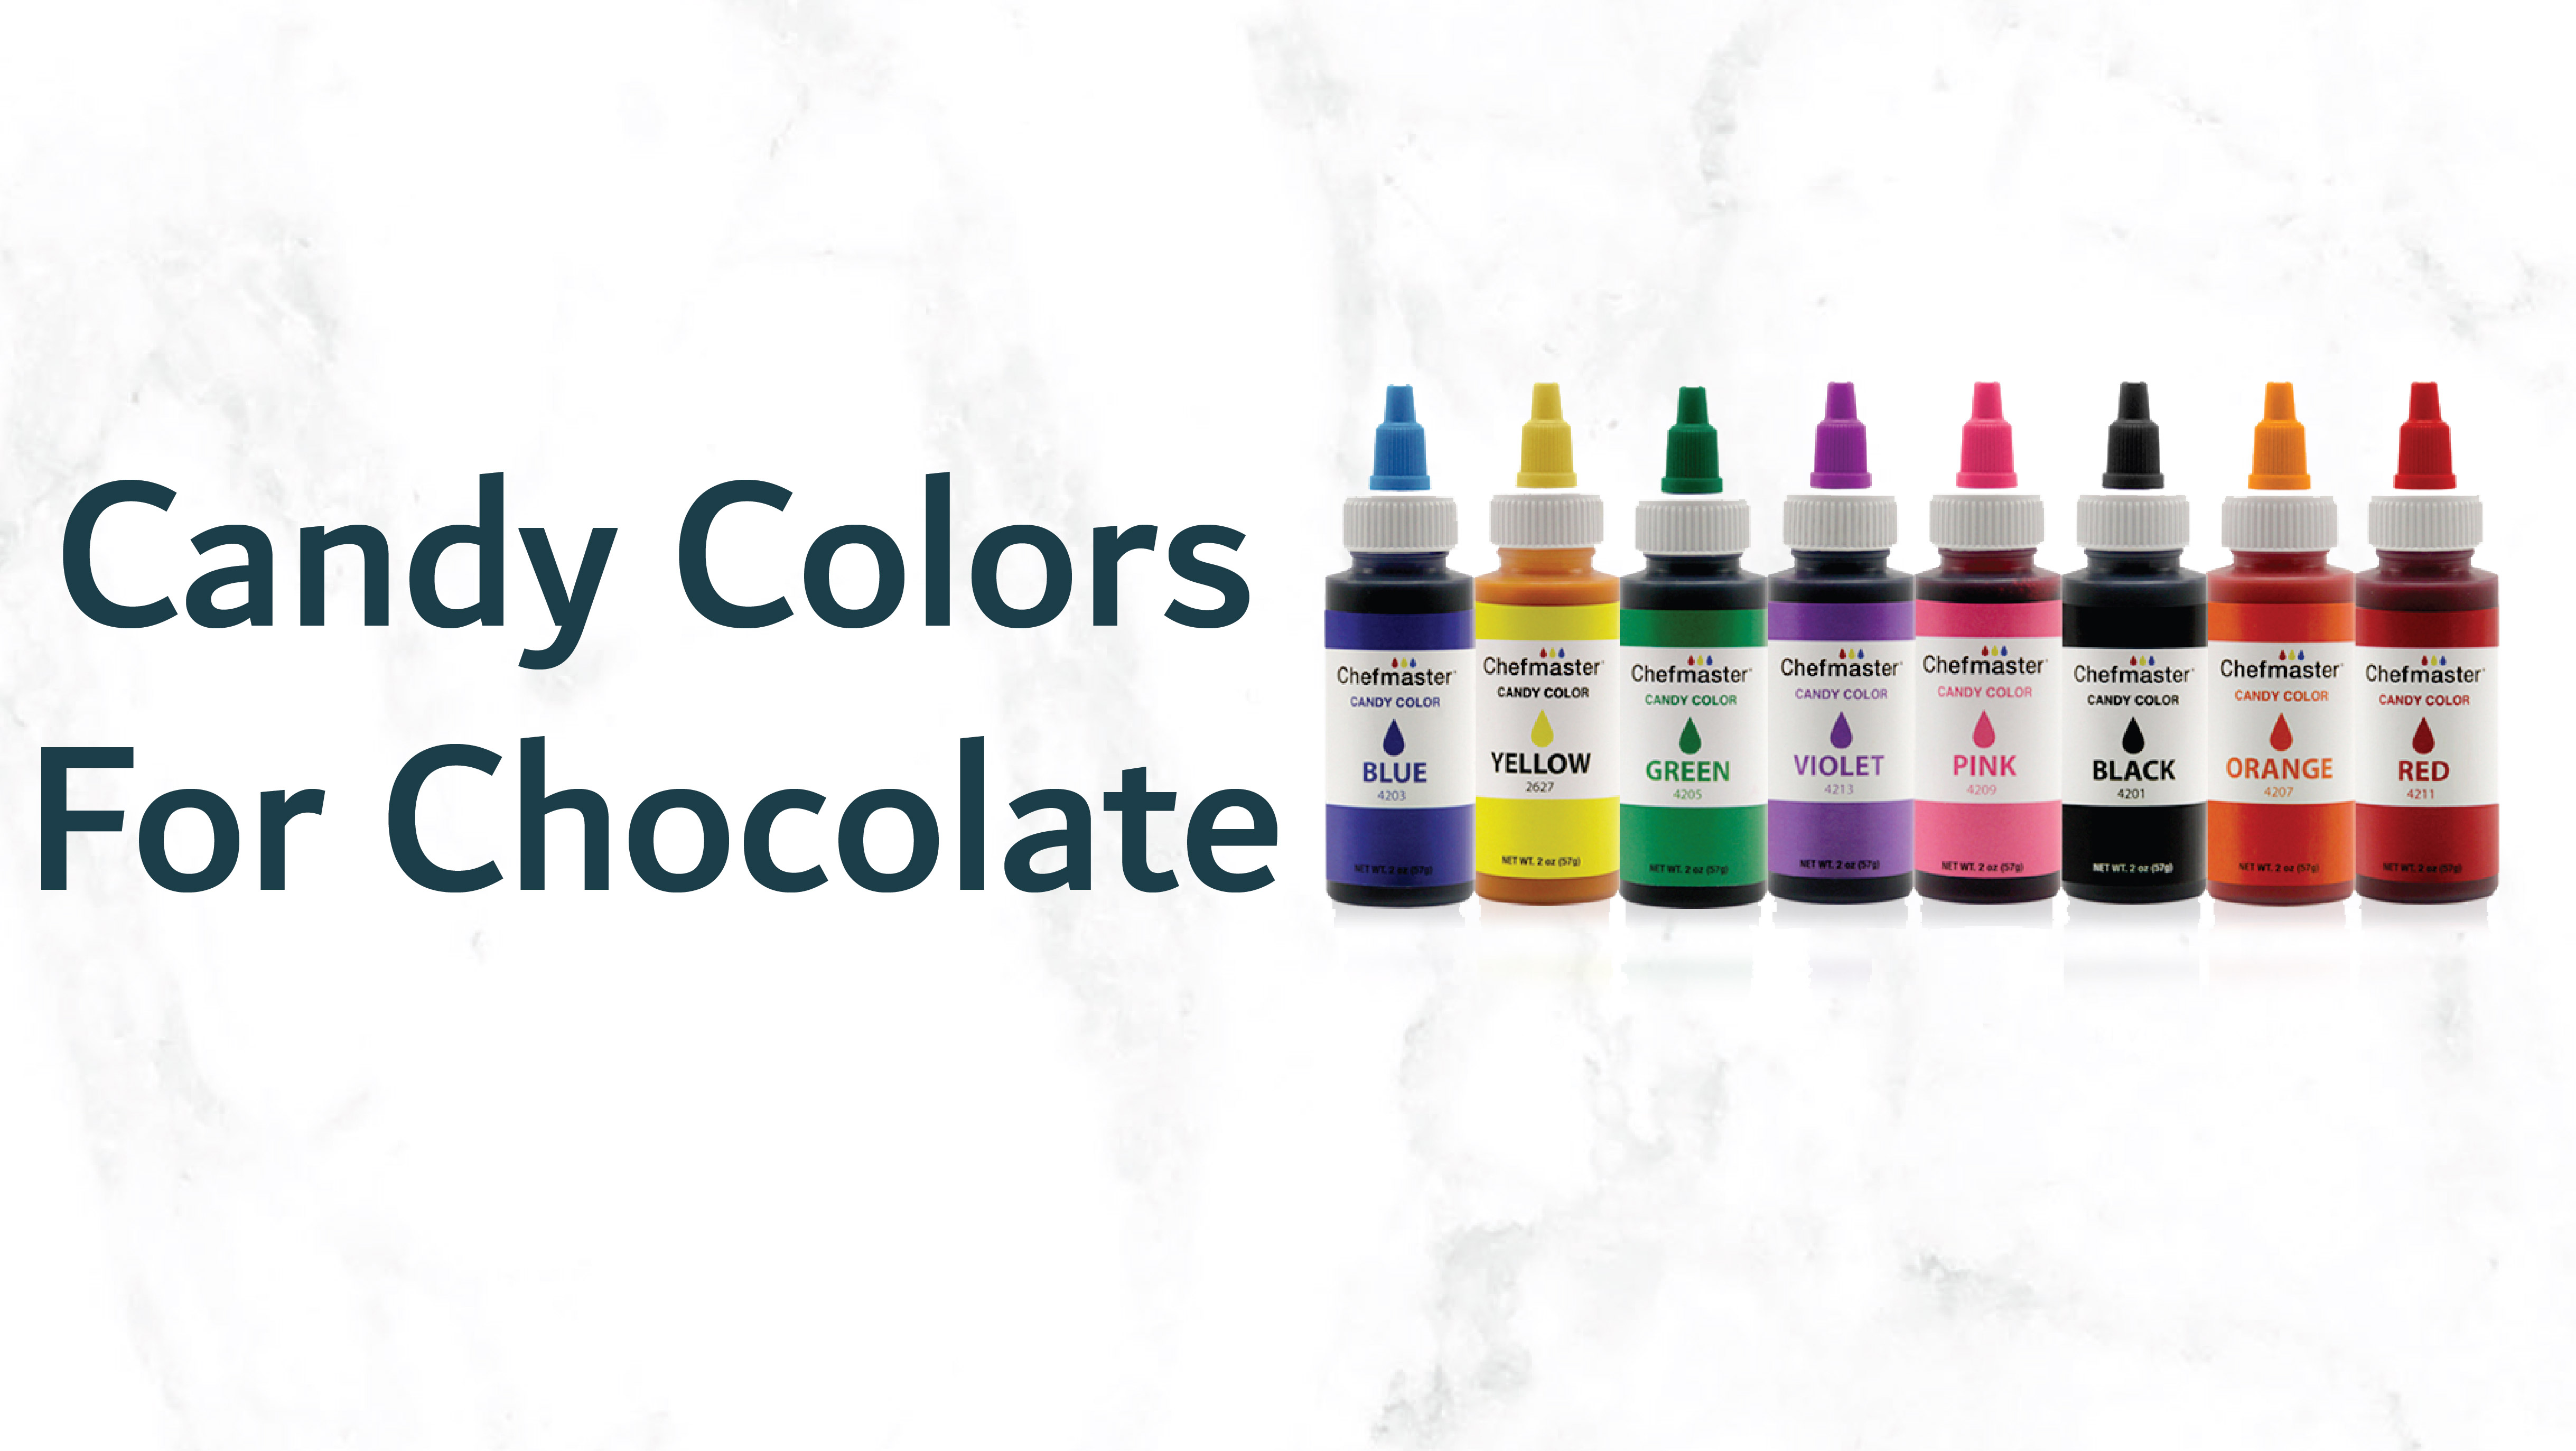 Candy Colors for Chocolate